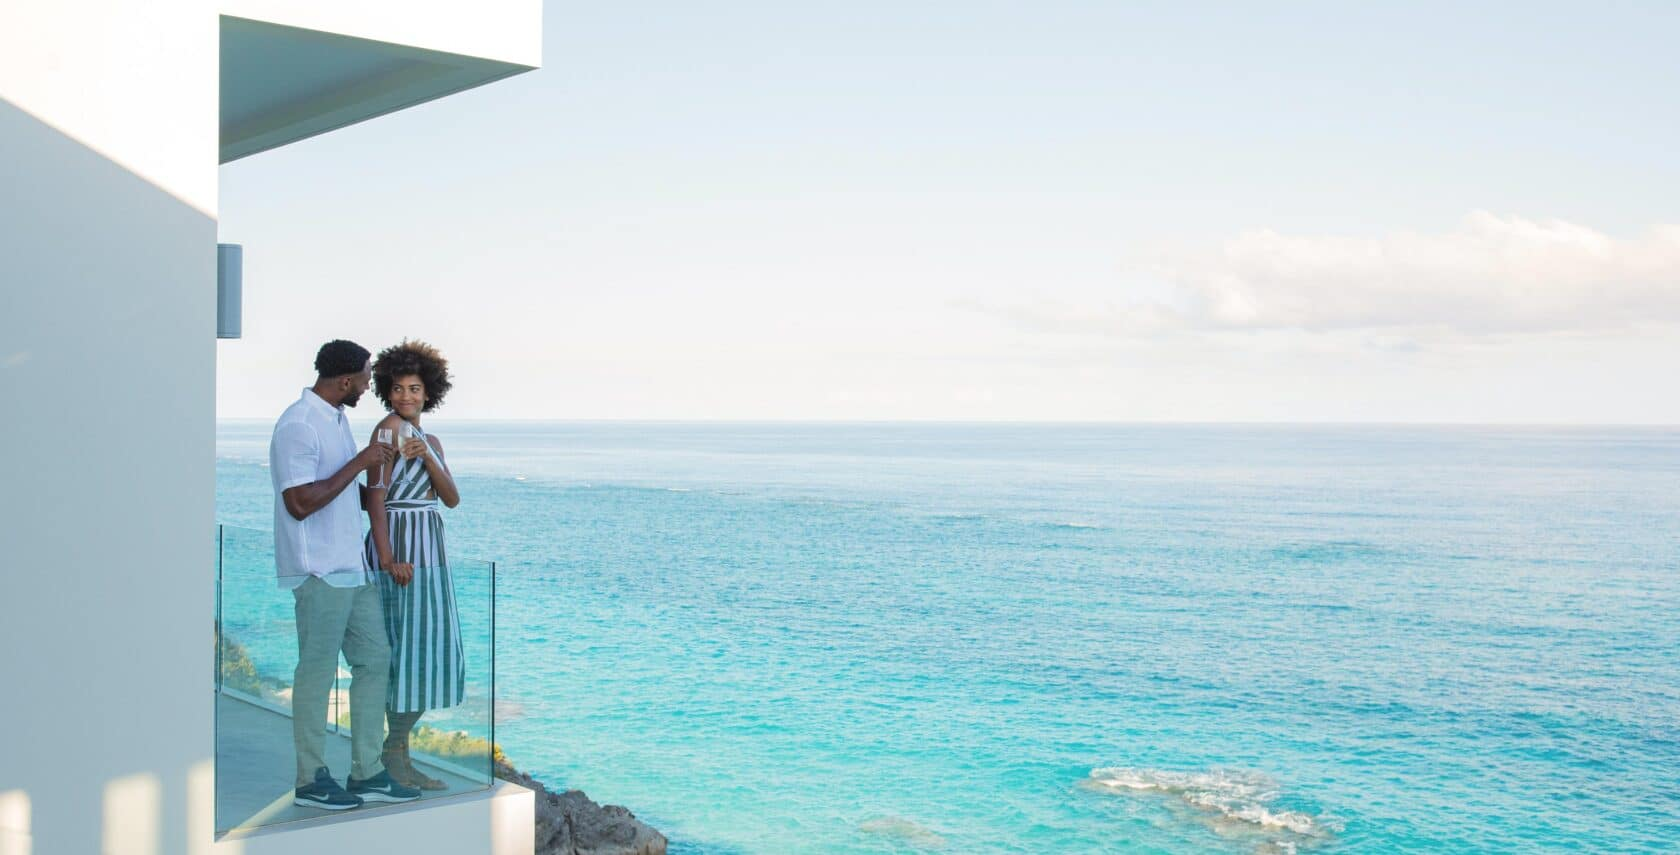 A couple on a balcony overlooking the ocean.